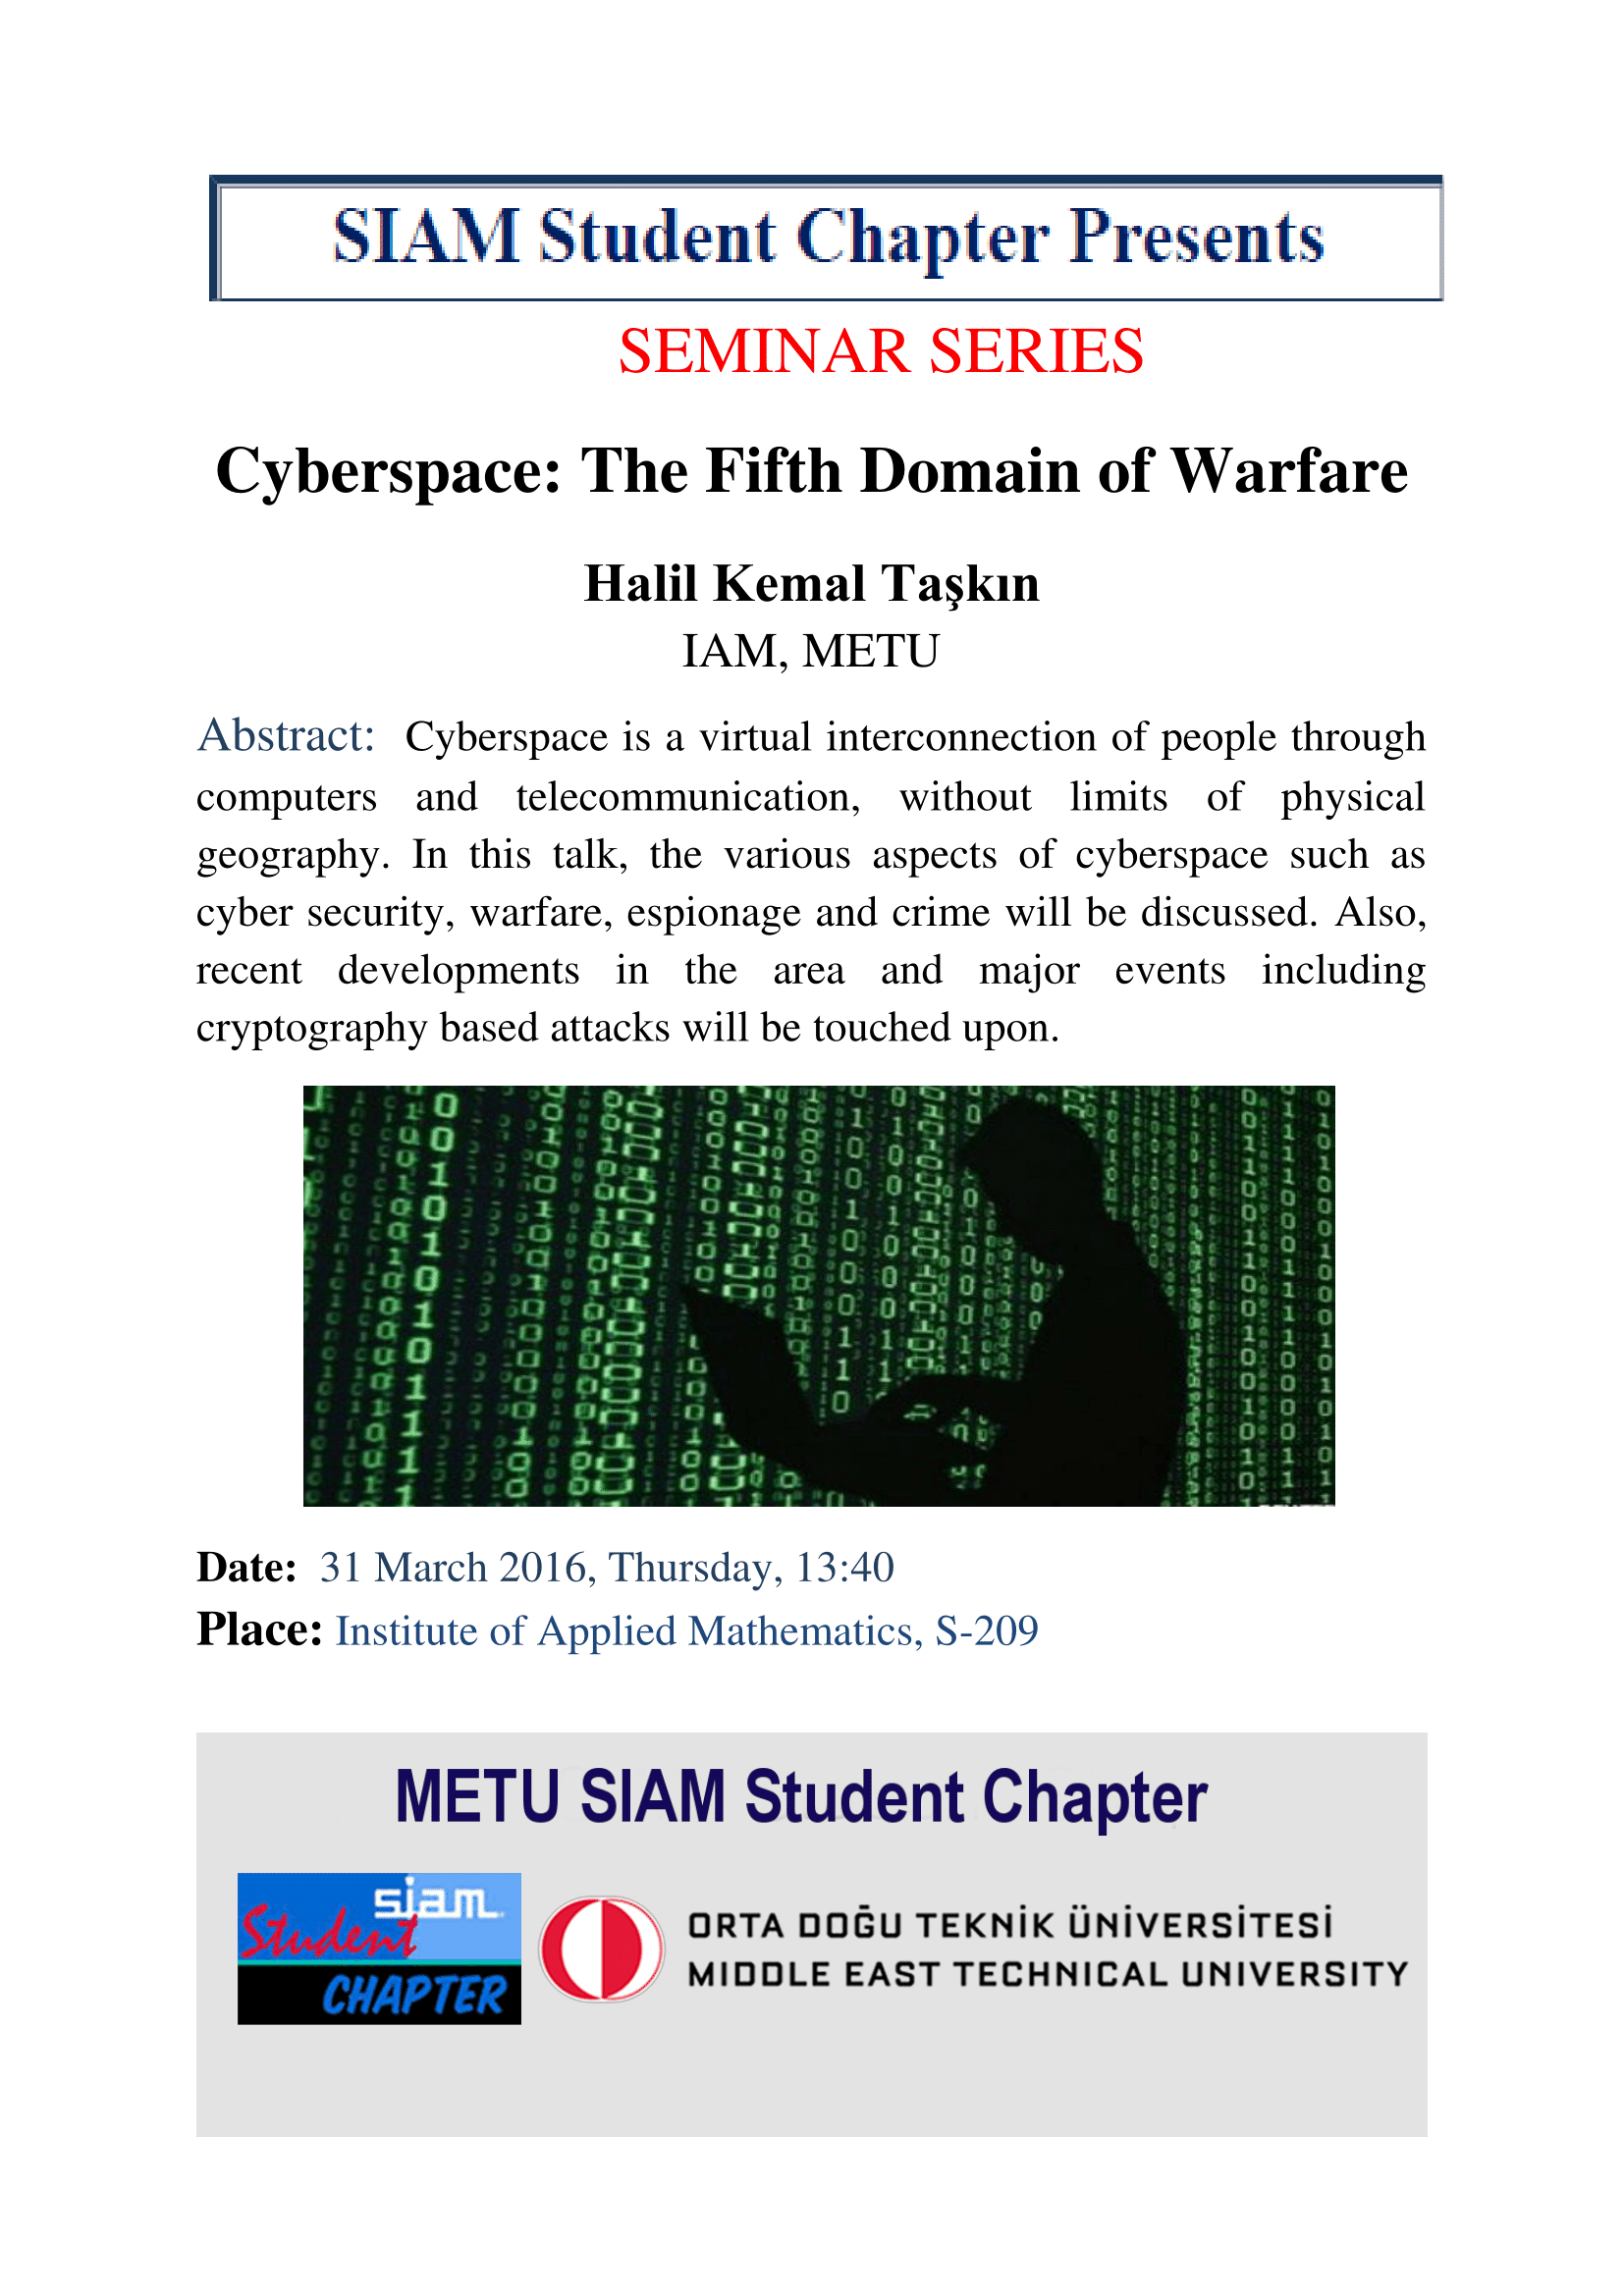 SIAM-SEMINAR-2_announcement-1